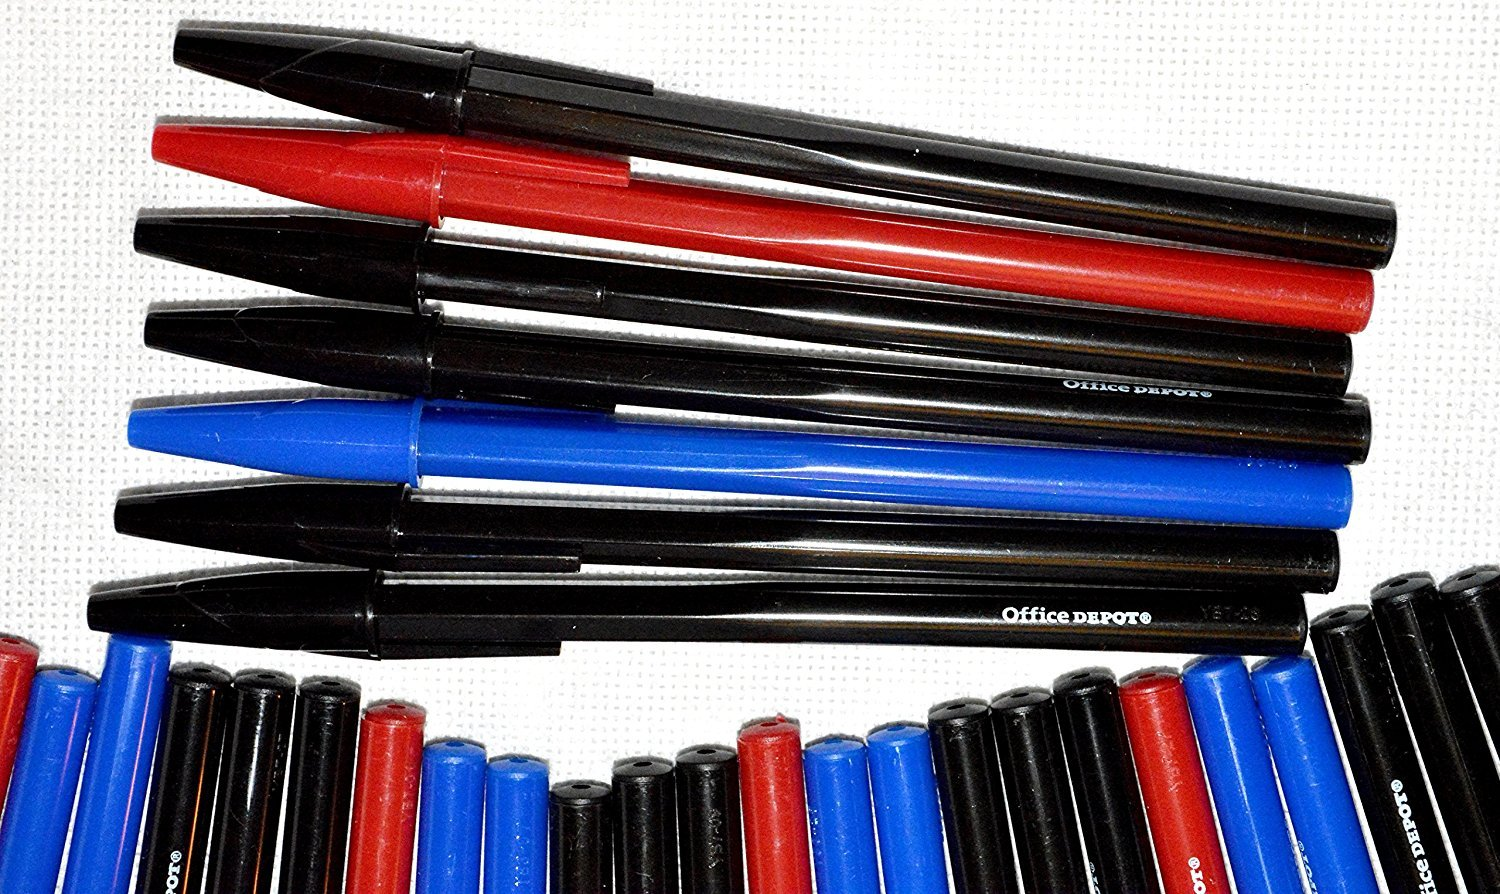 120 count Office Depot Ballpoint Pen Red, Blue, Black